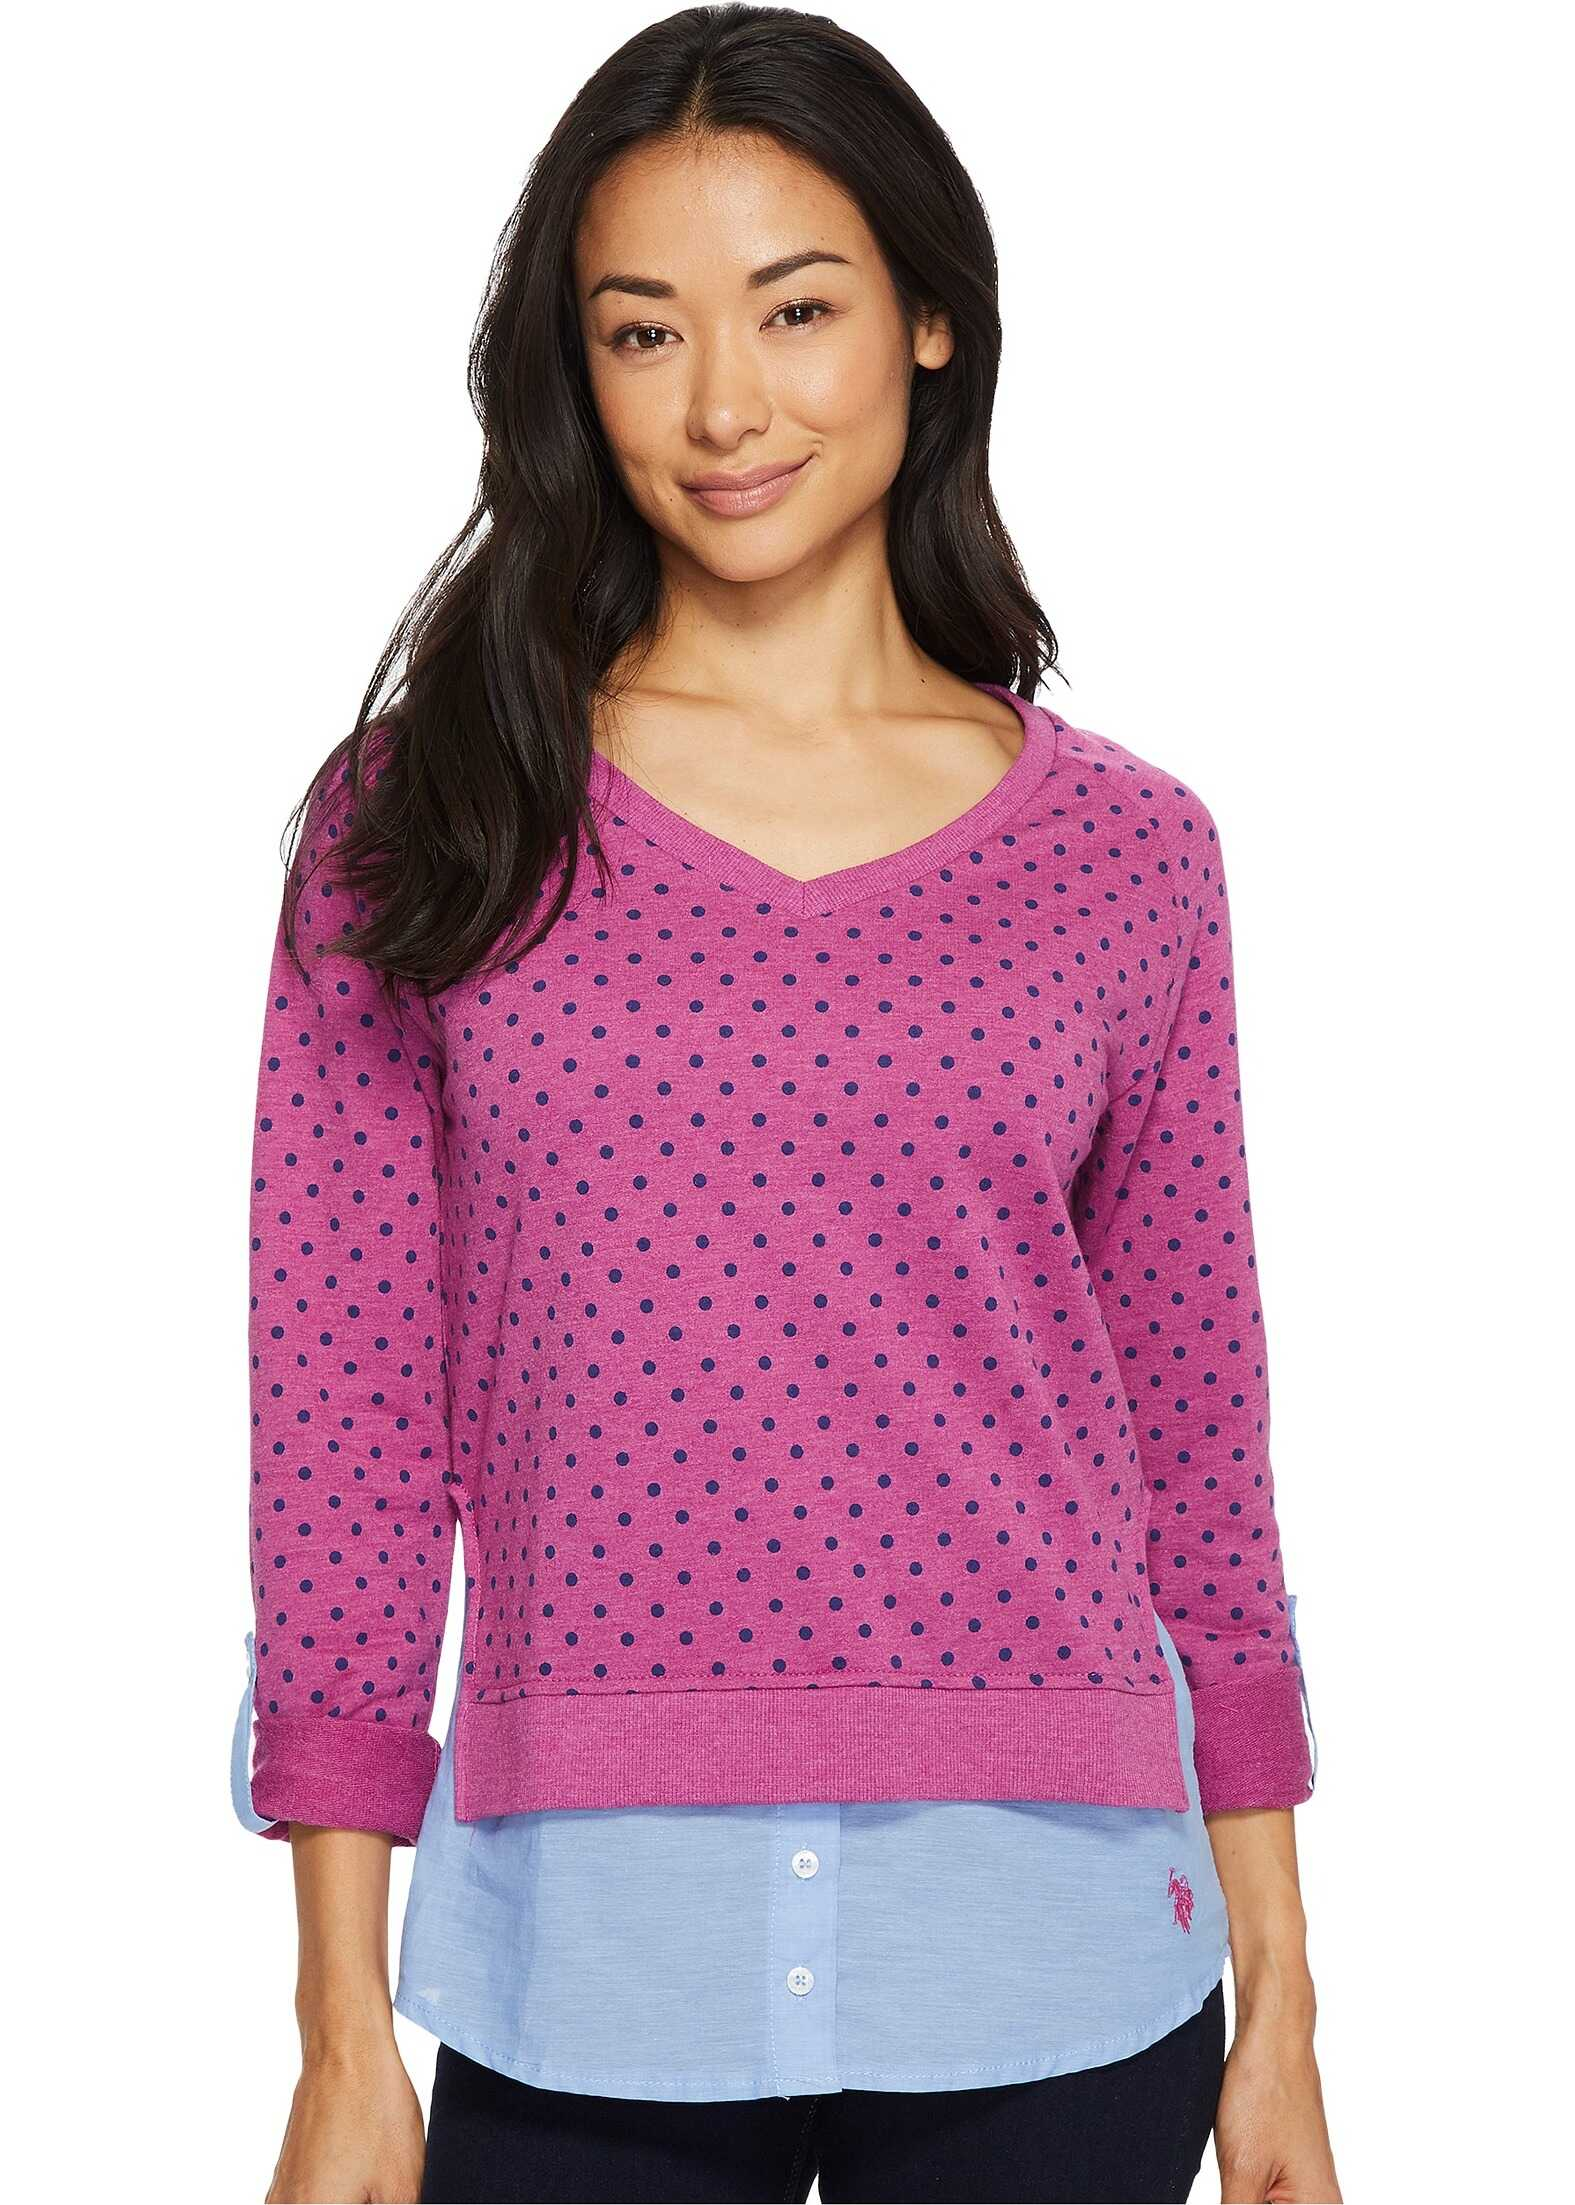 U.S. POLO ASSN. Polka Dot French Terry and Woven Twofer Top Rococo Violet